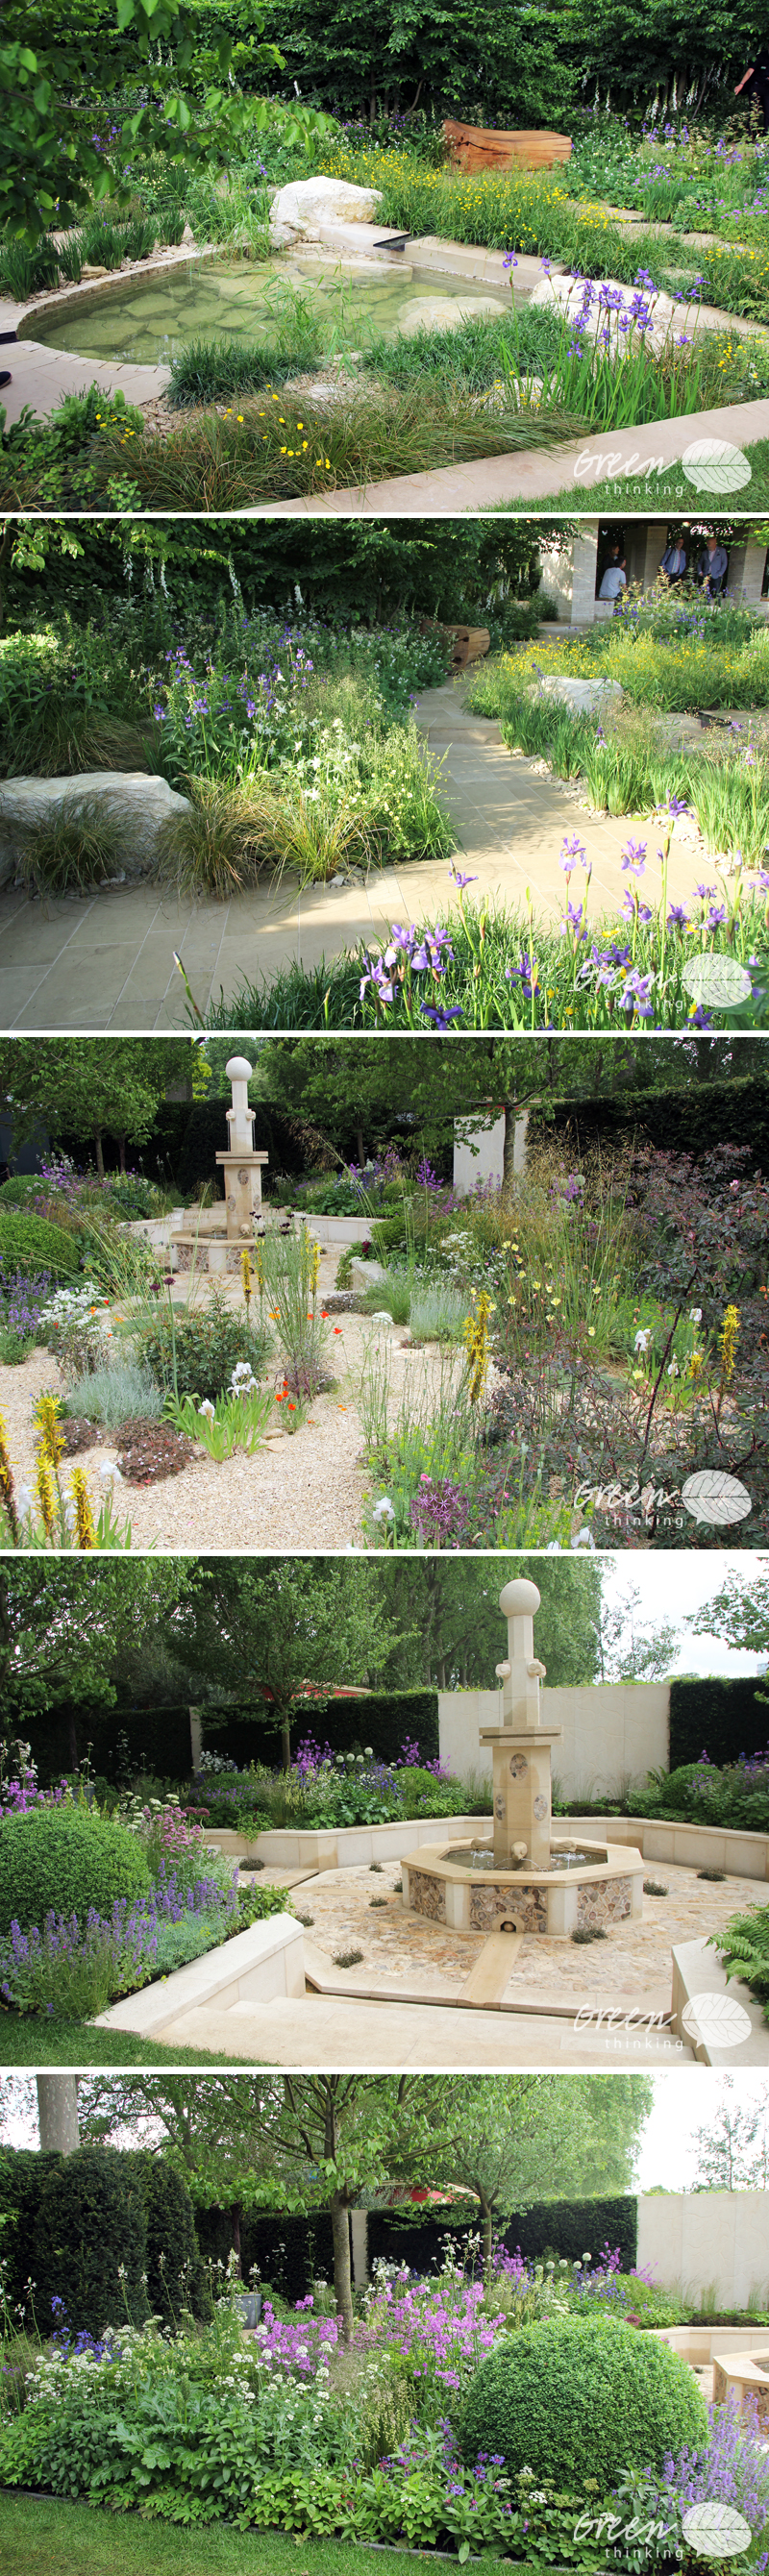 time to reflect_adamfrost_mg garden clive west_RHSchelsea2014